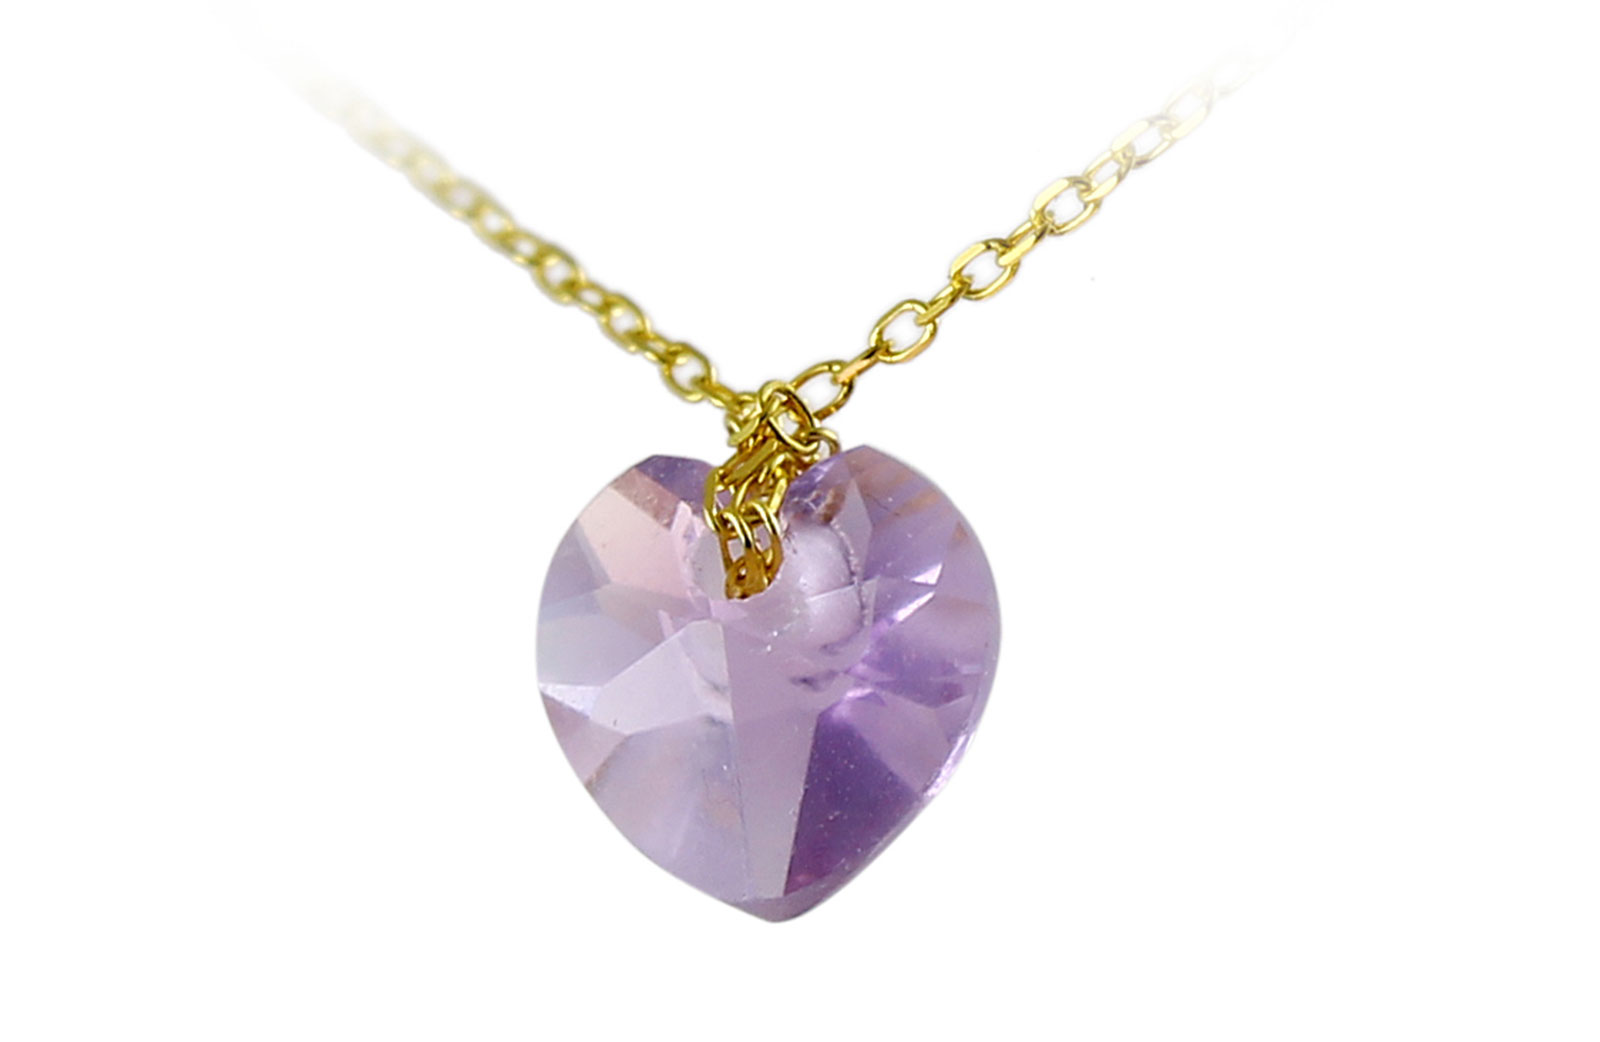 Vera Perla 18K Yellow Gold 7mm Heart Cut Genuine Amethyst Necklace